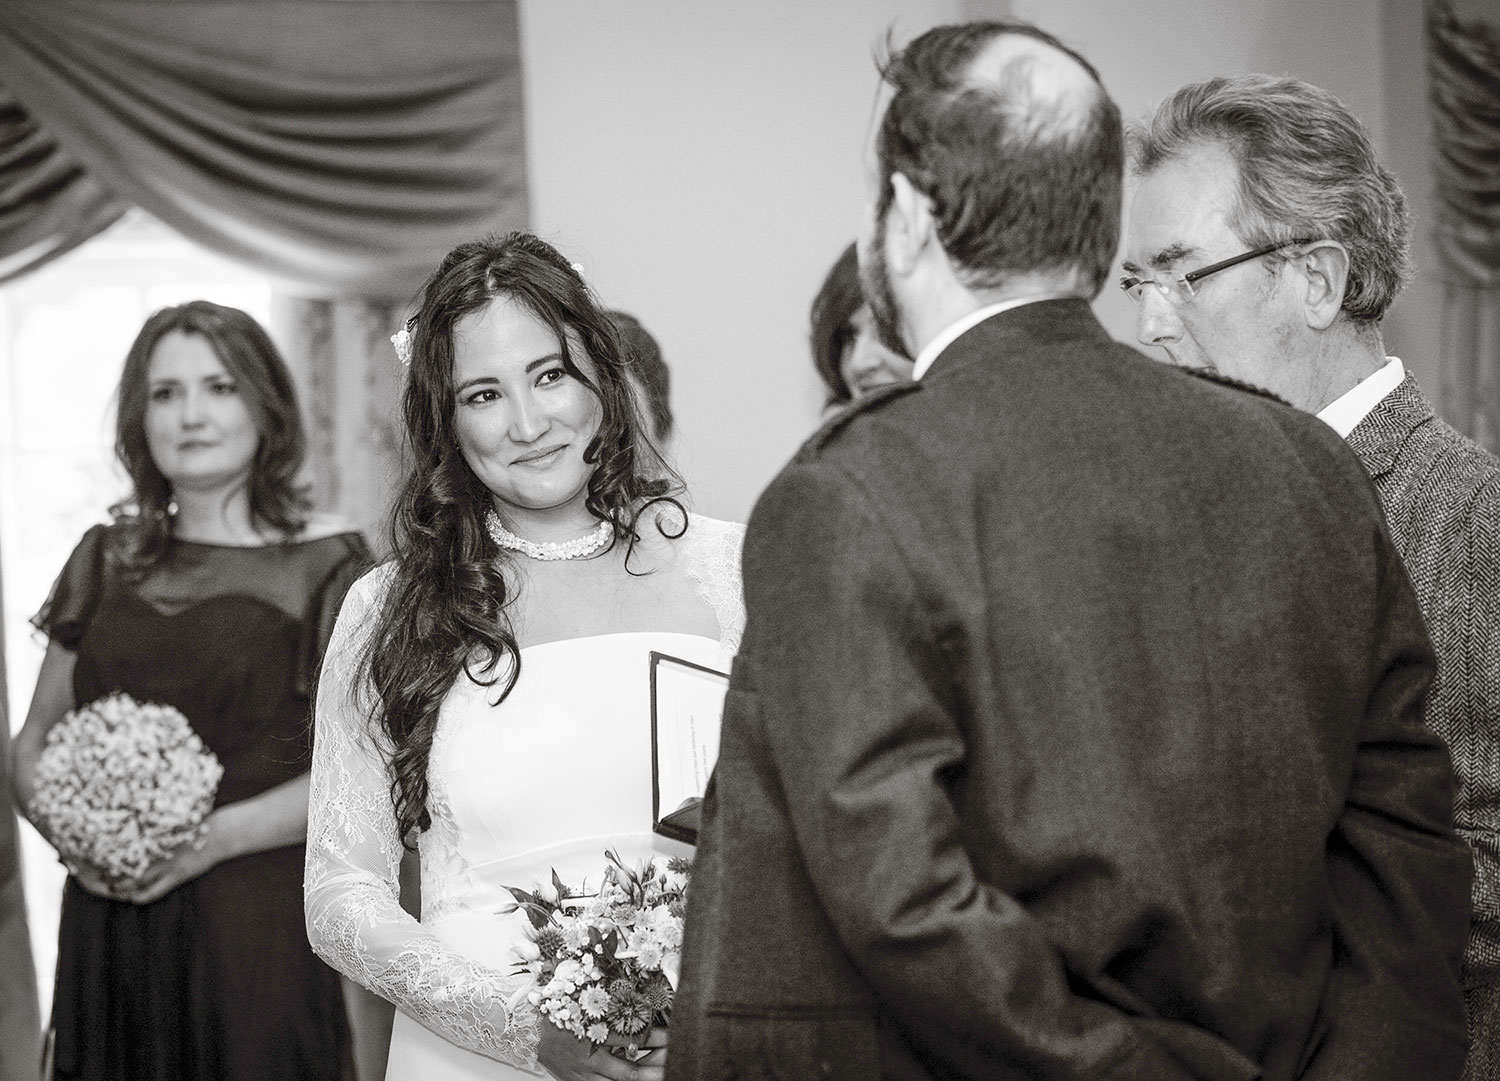 I usually try to position myself opposite the bride. And if I can, at a strategic moment - without drawing attention to myself - I might move across to be opposite the groom for a little while during the ceremony too, best spot for the photographer during the wedding ceremony